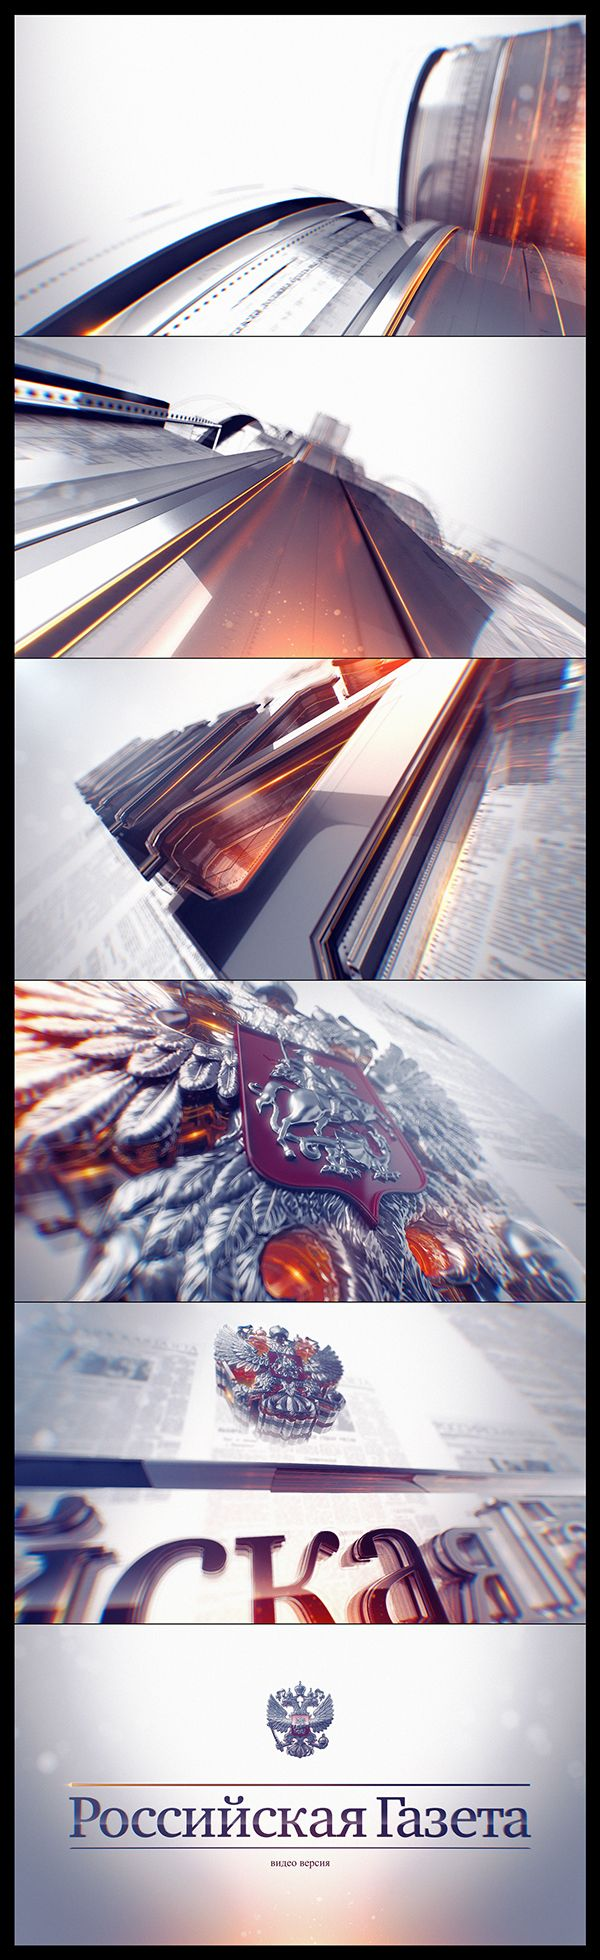 motion design styleframes Discarded ideas on Behance. broadcast graphics mood and story boards